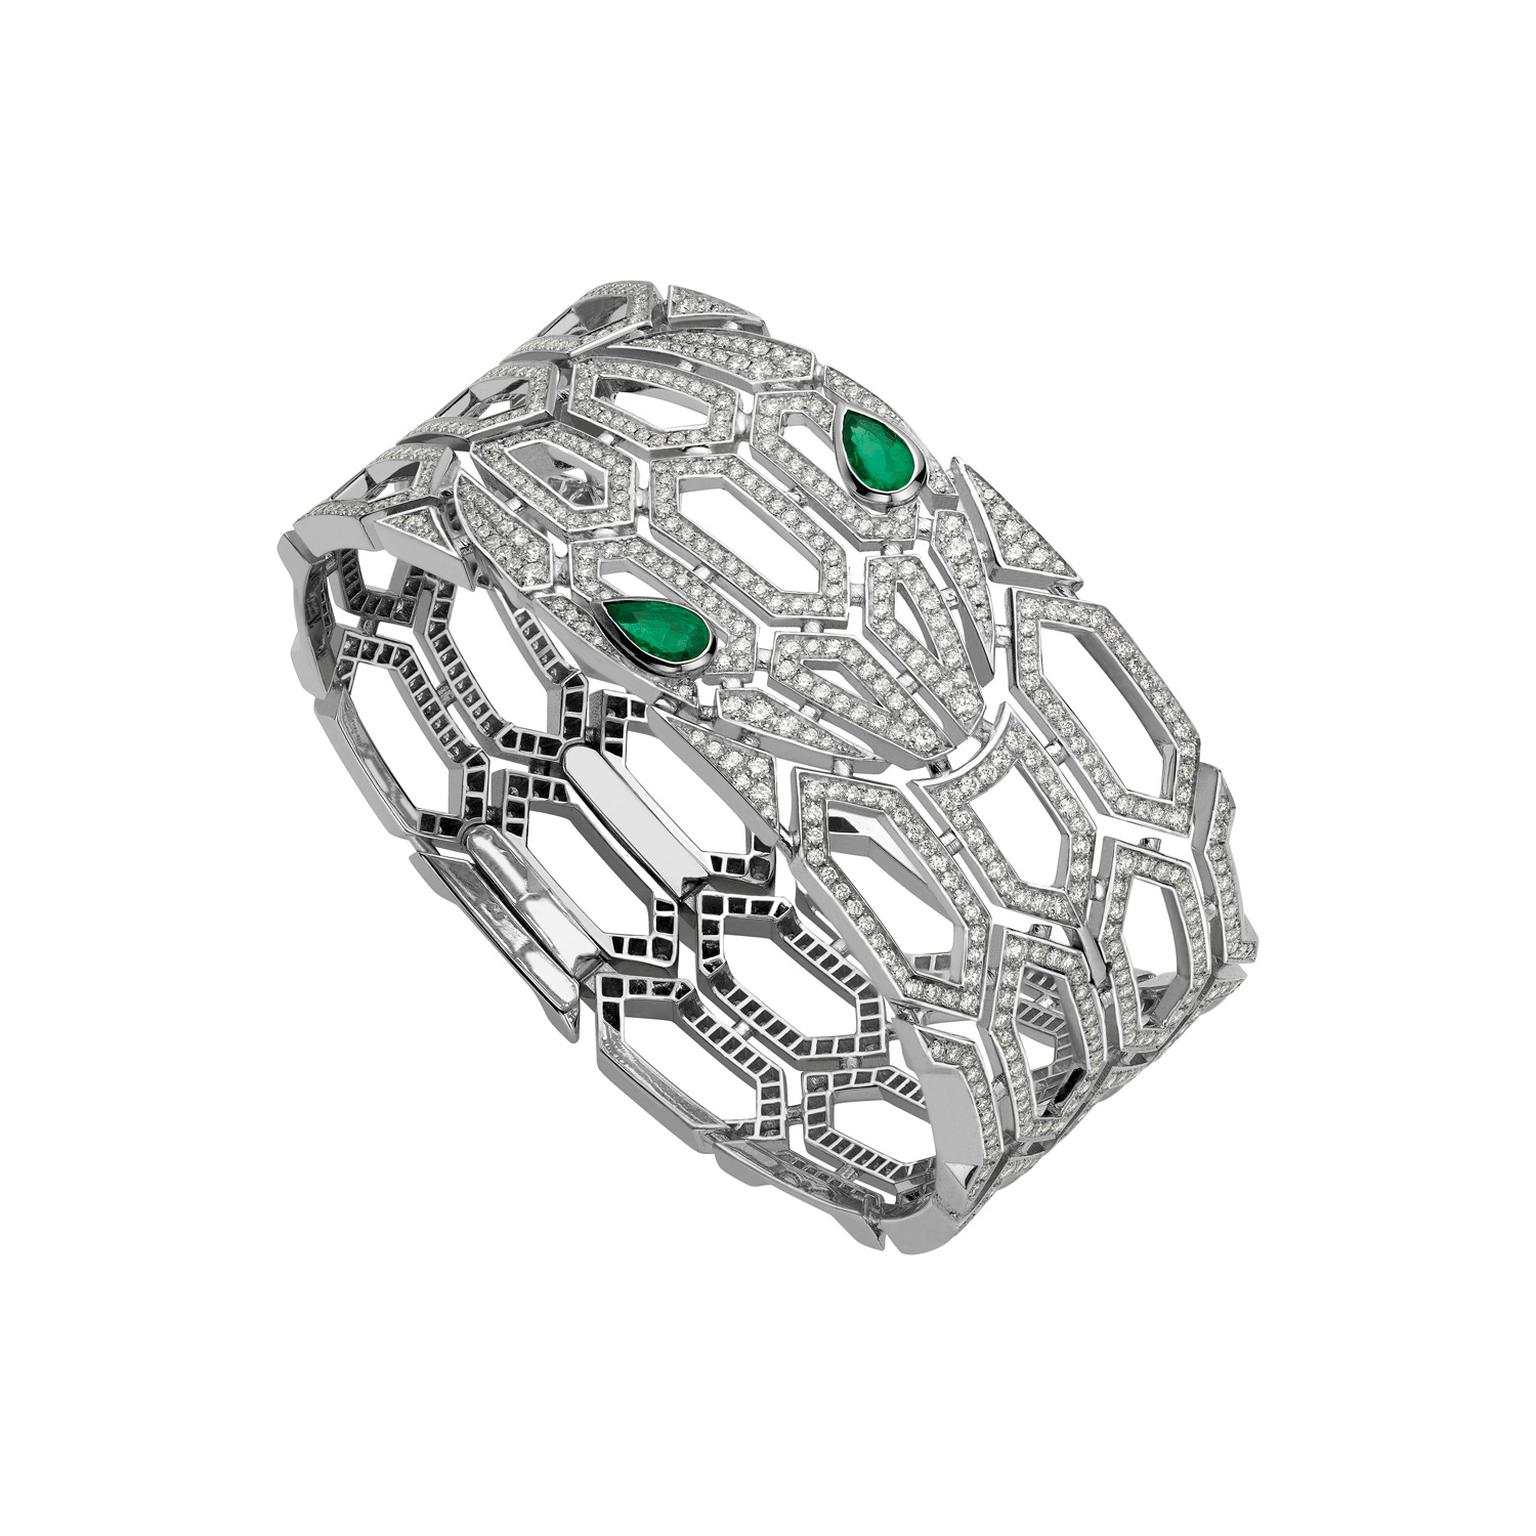 Bulgari Serpenti Seduttori white gold bracelet with emeralds